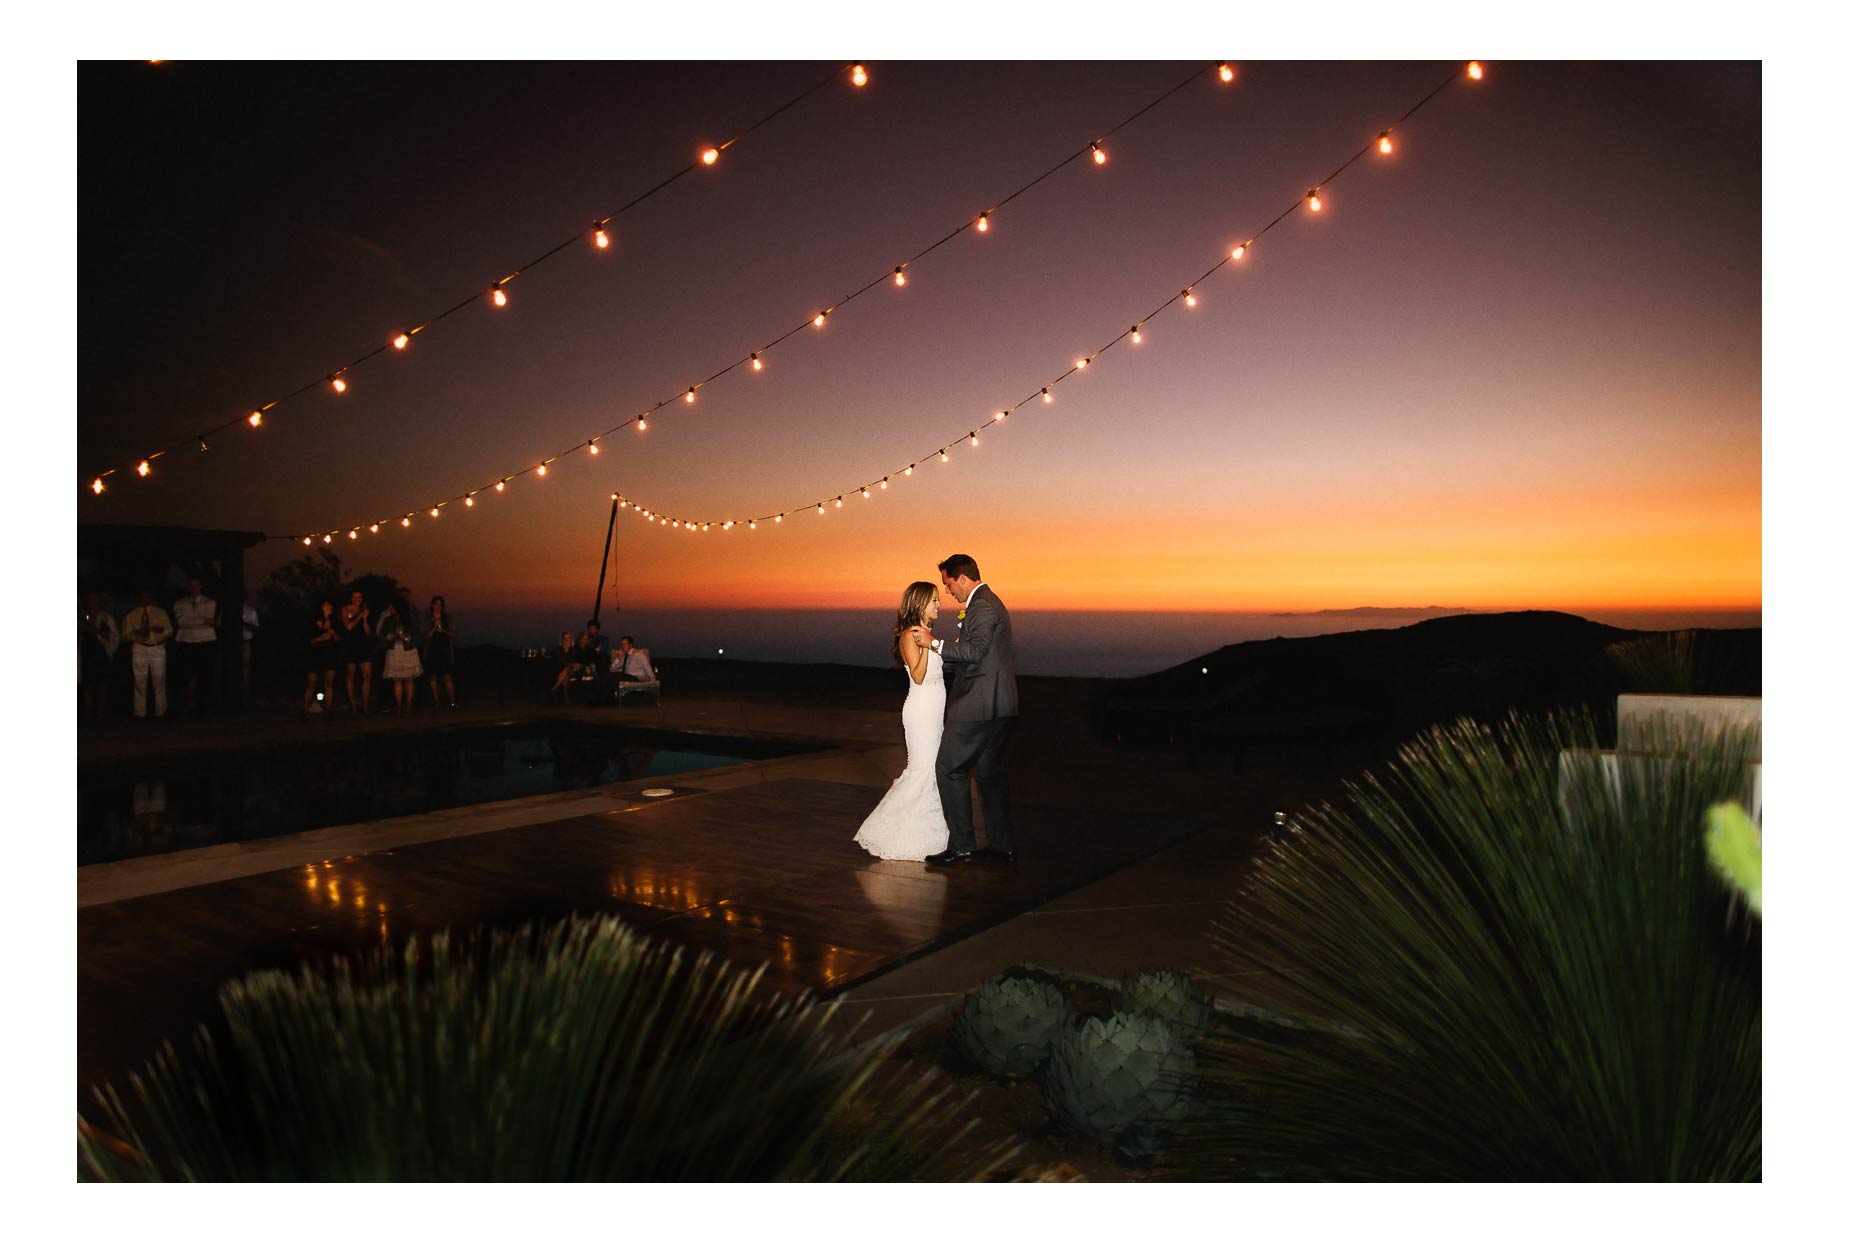 best creative wedding photographers in malibu Malibu Wedding Photography Pierre-olivier Photography